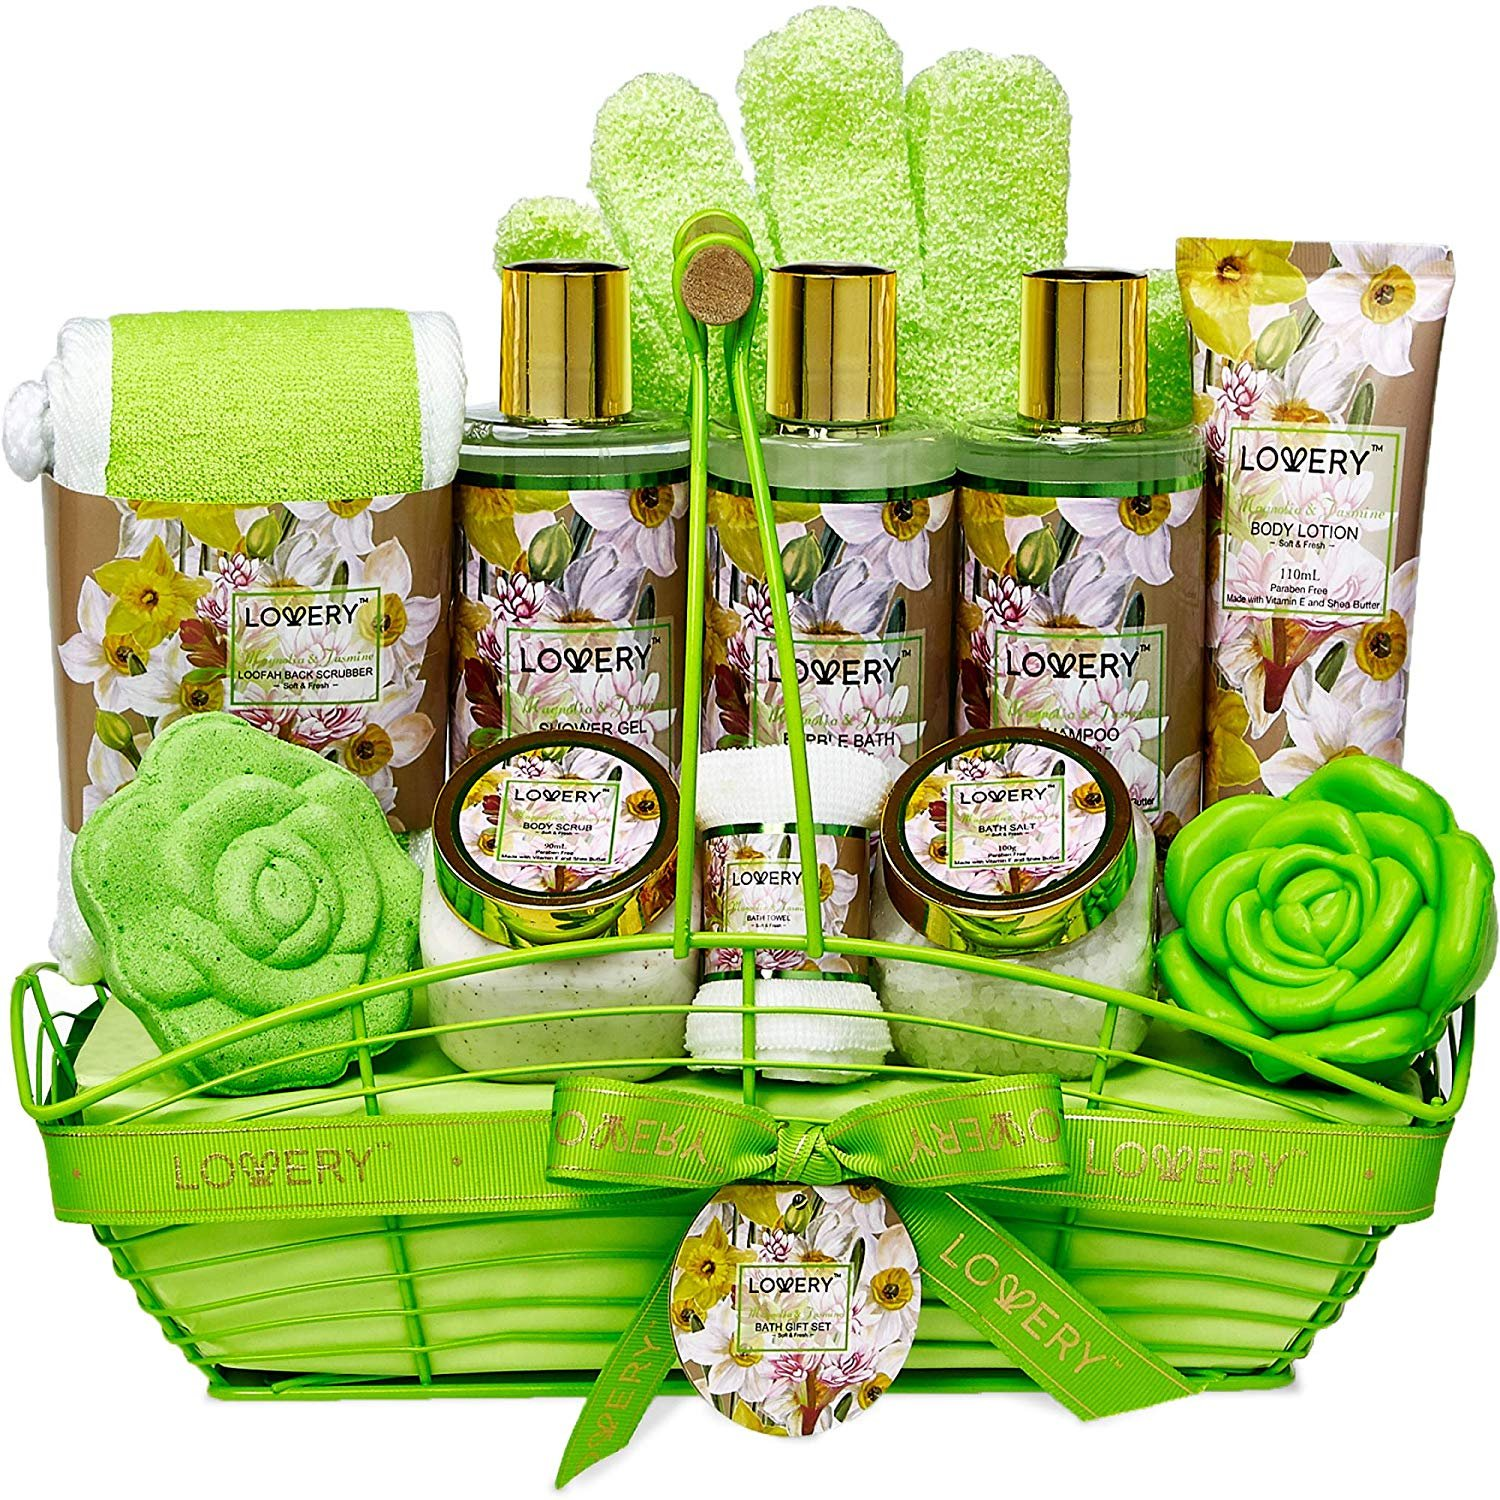 Bath and Body Gift Basket For Women – Magnolia and Jasmine Home Spa Set, Includes Fragrant Lotions, Bath Bomb, Towel, Shower Gloves, Green Wired Bread Basket and More - 13 Piece Set